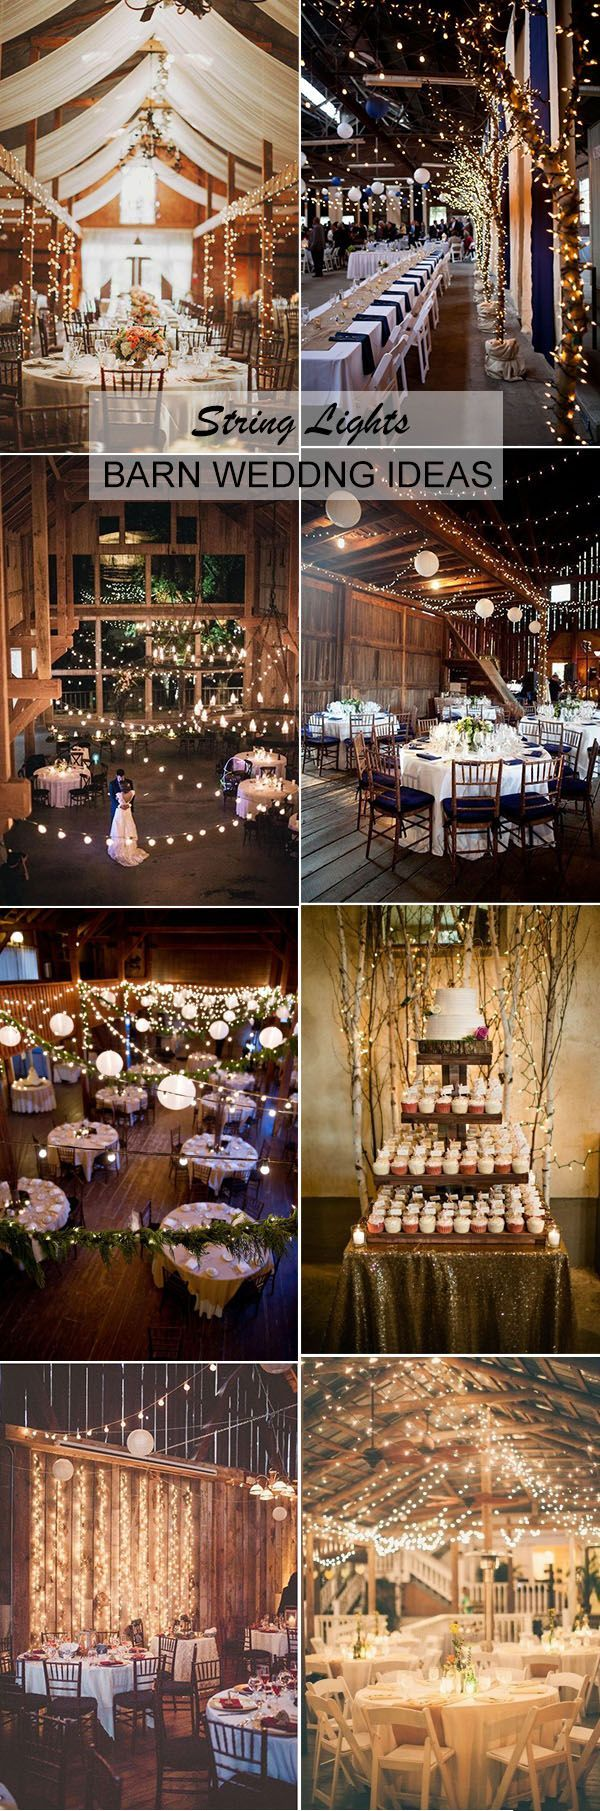 string lighting barn wedding reception ideas